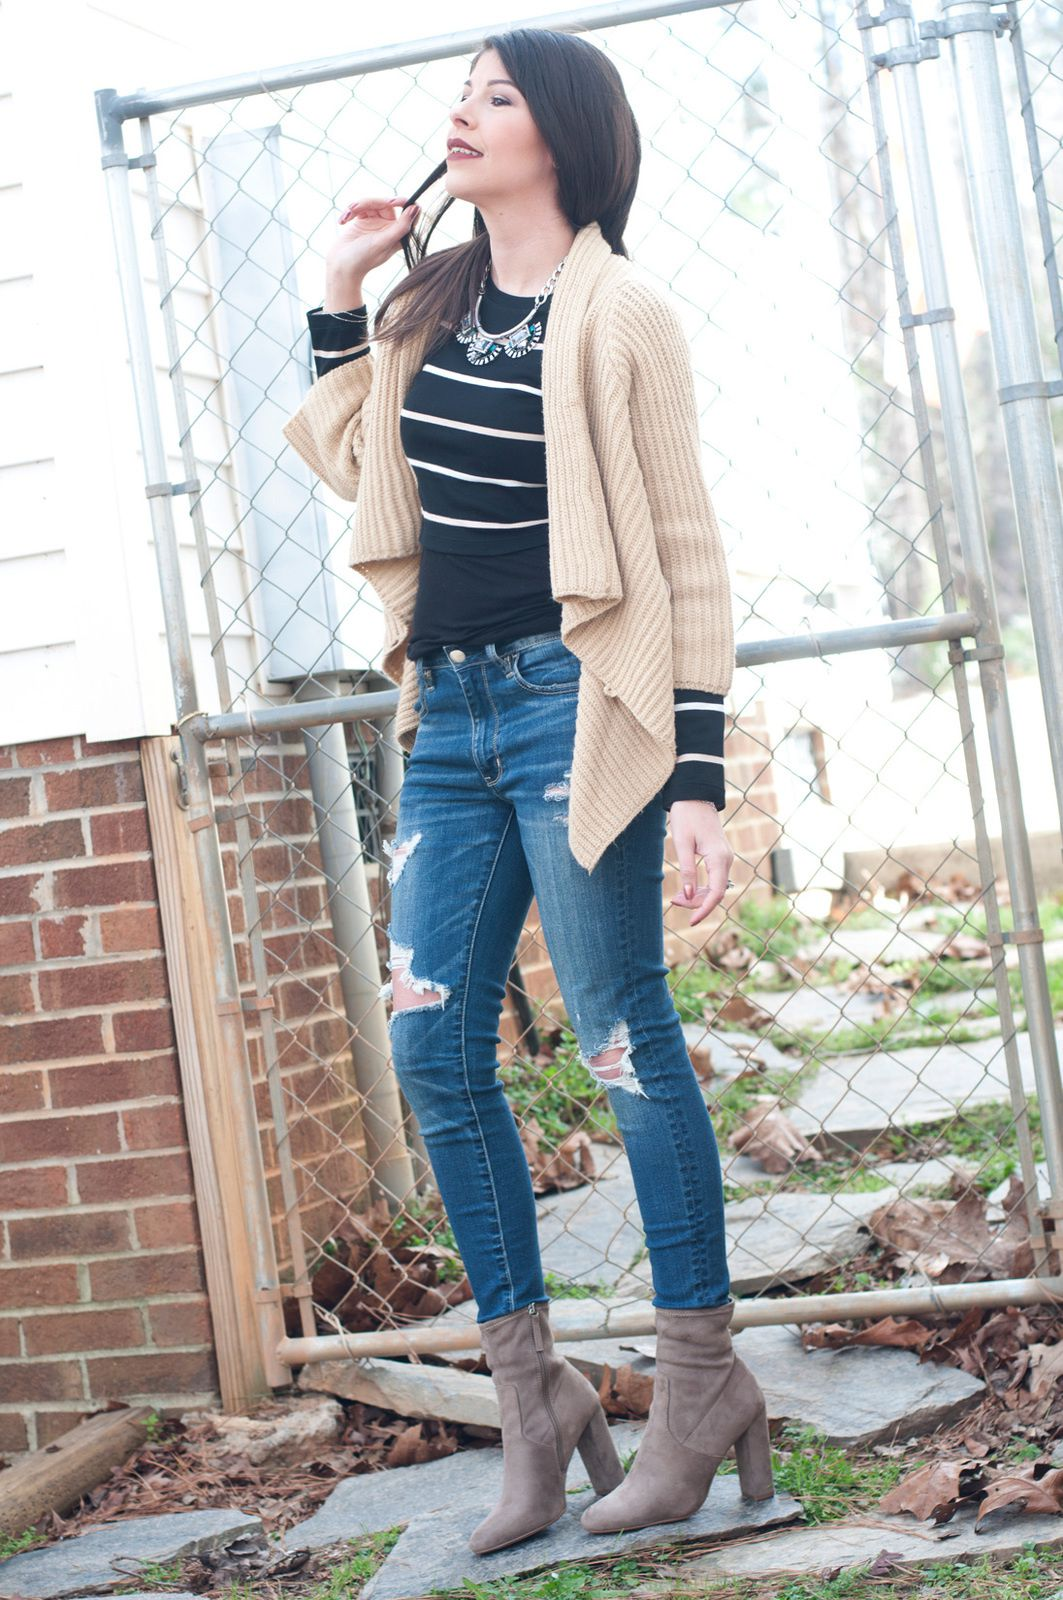 Stripes & Cream | Outfit of the Day